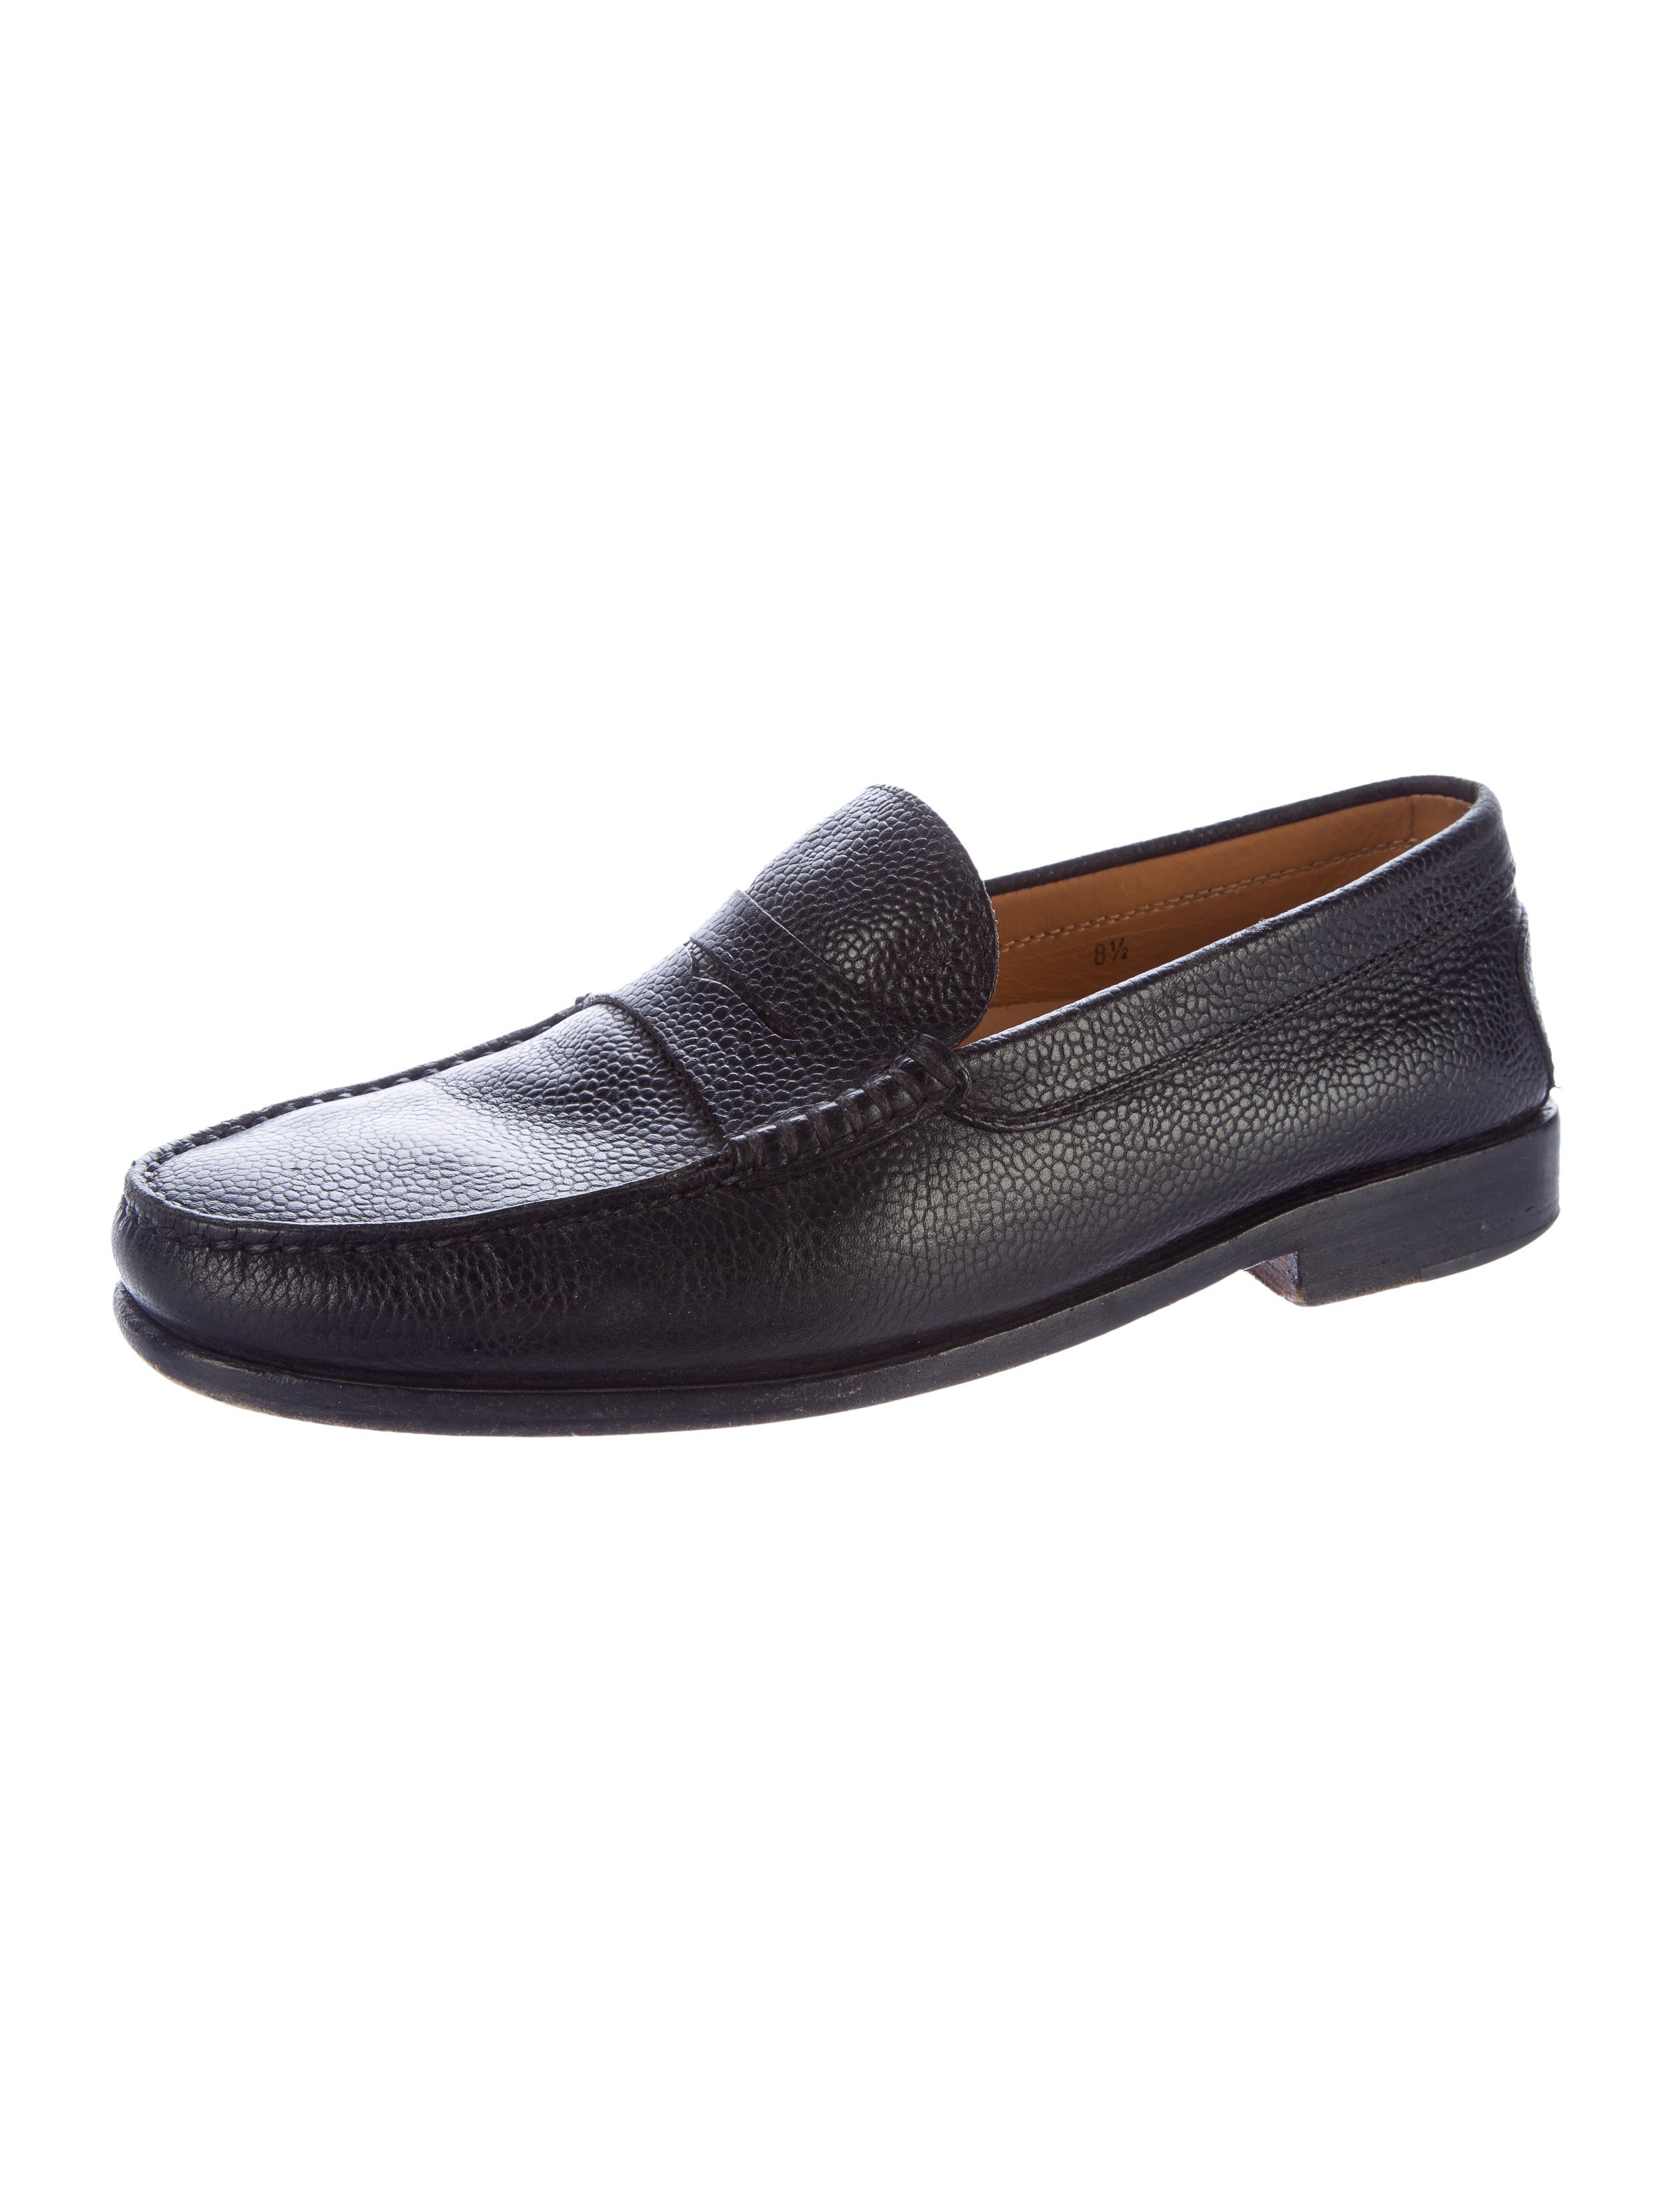 tod s leather dress loafers shoes tod39429 the realreal